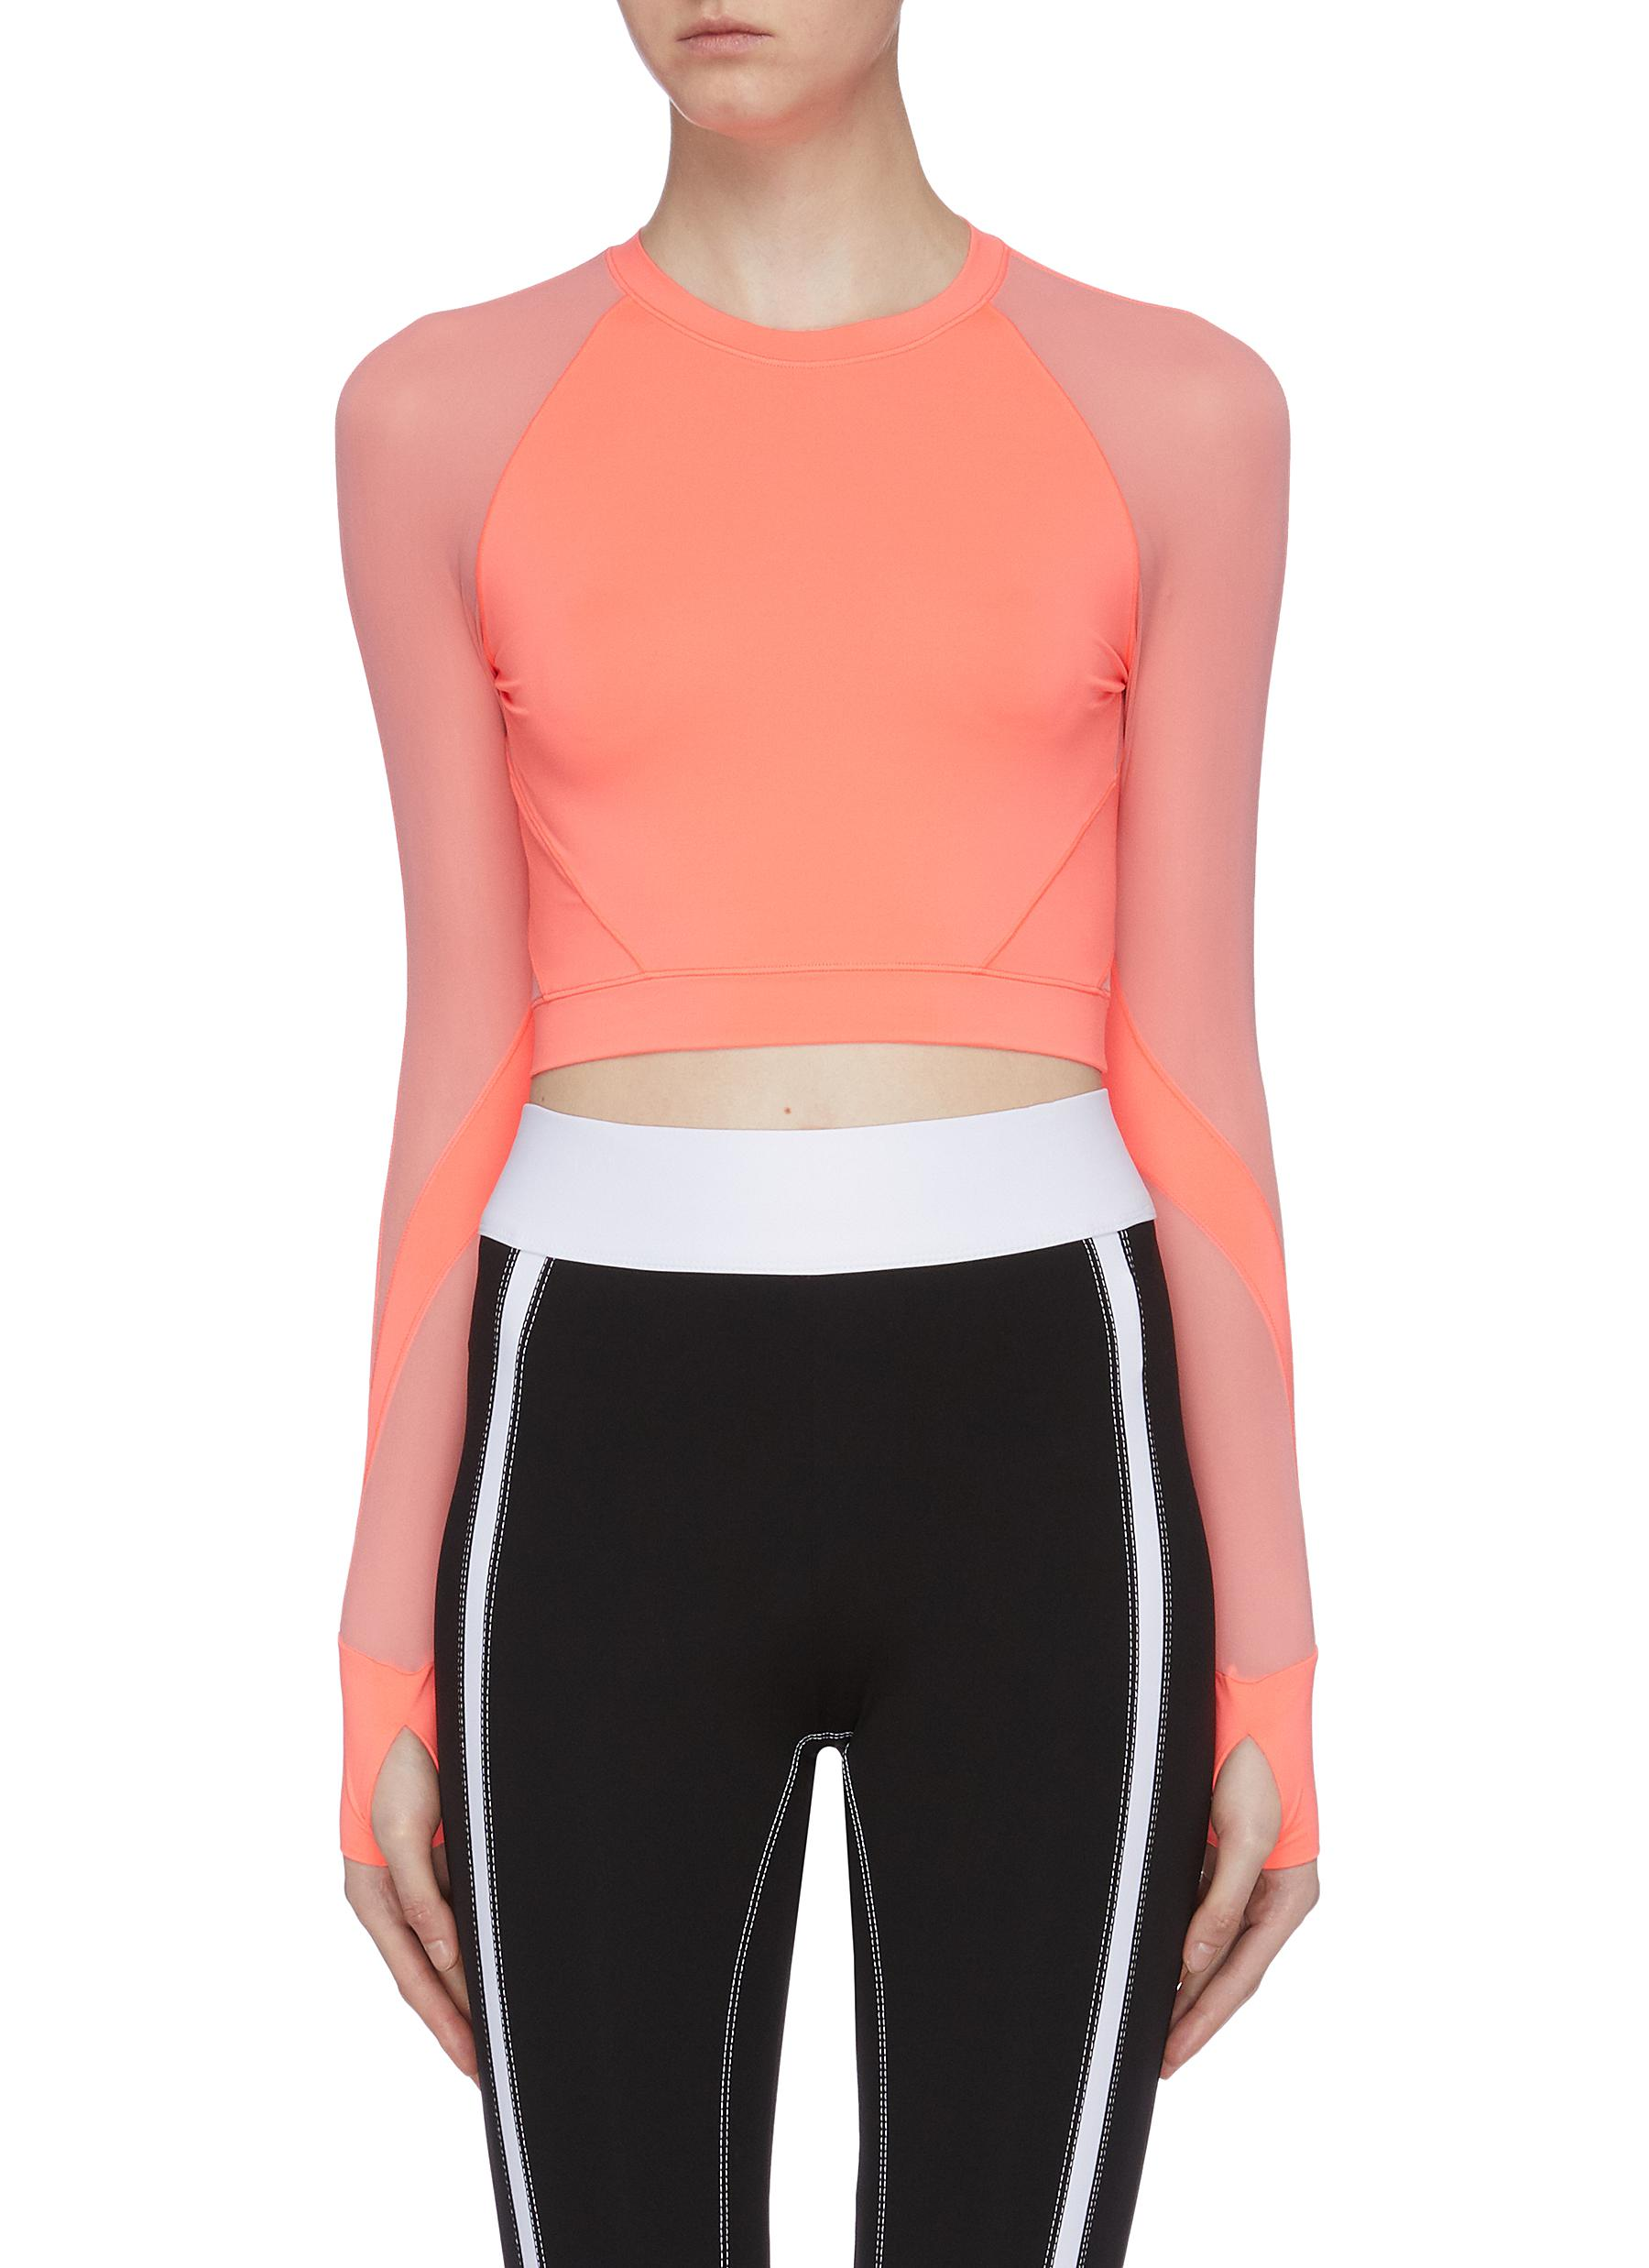 Contrast sleeve cropped performance top by Particle Fever